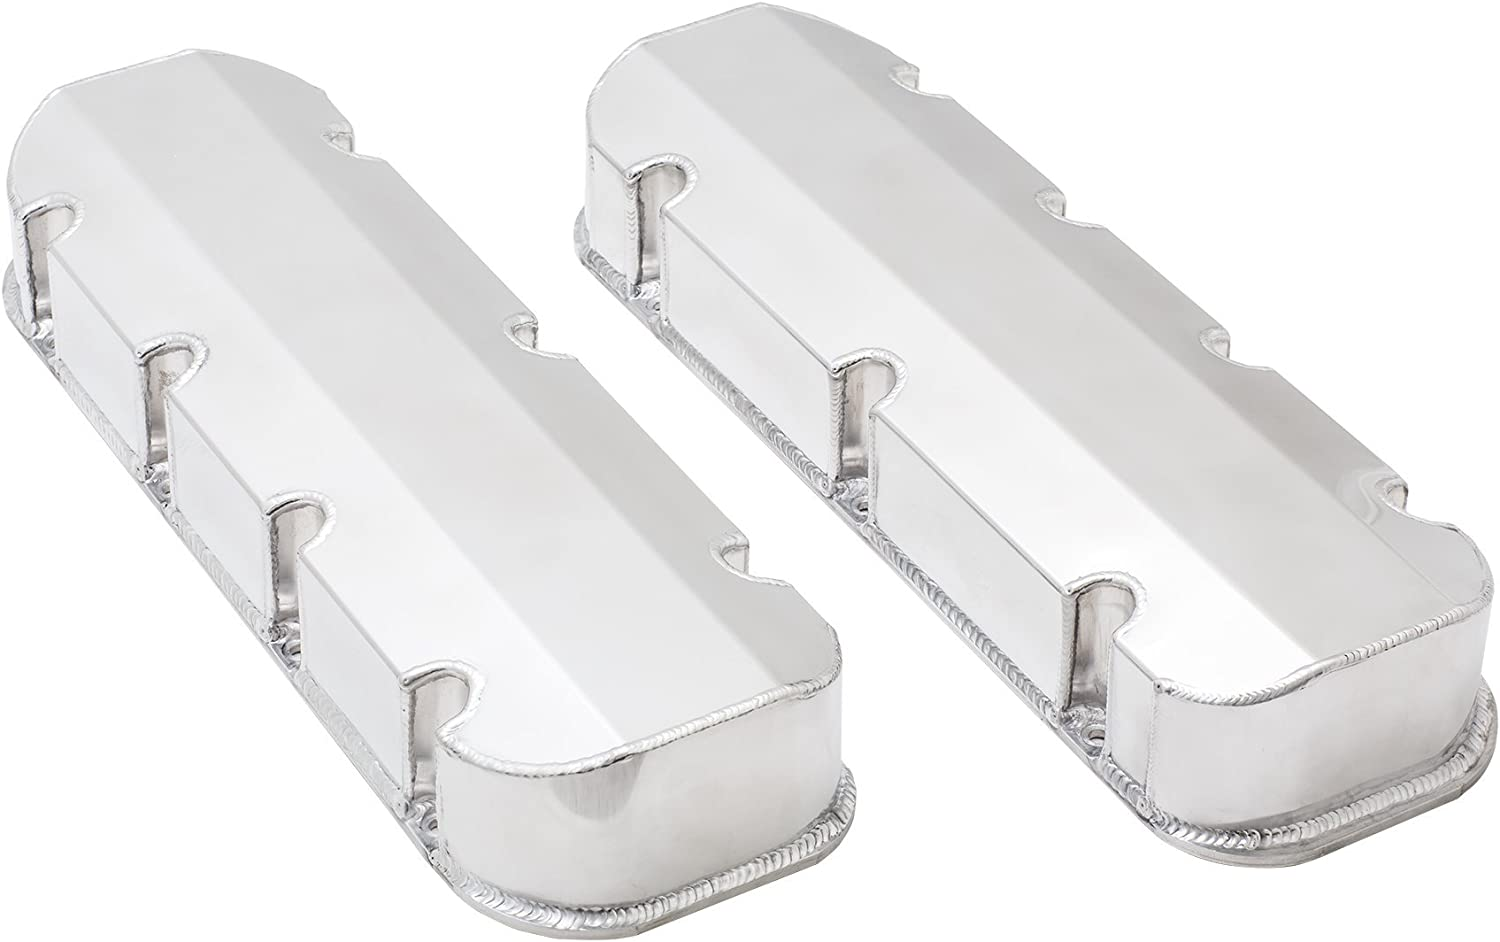 Top Street Performance JM8092-8P Polished Tall Fabricated Racing Valve Cover with Rail Short Bolt with Breather Hole